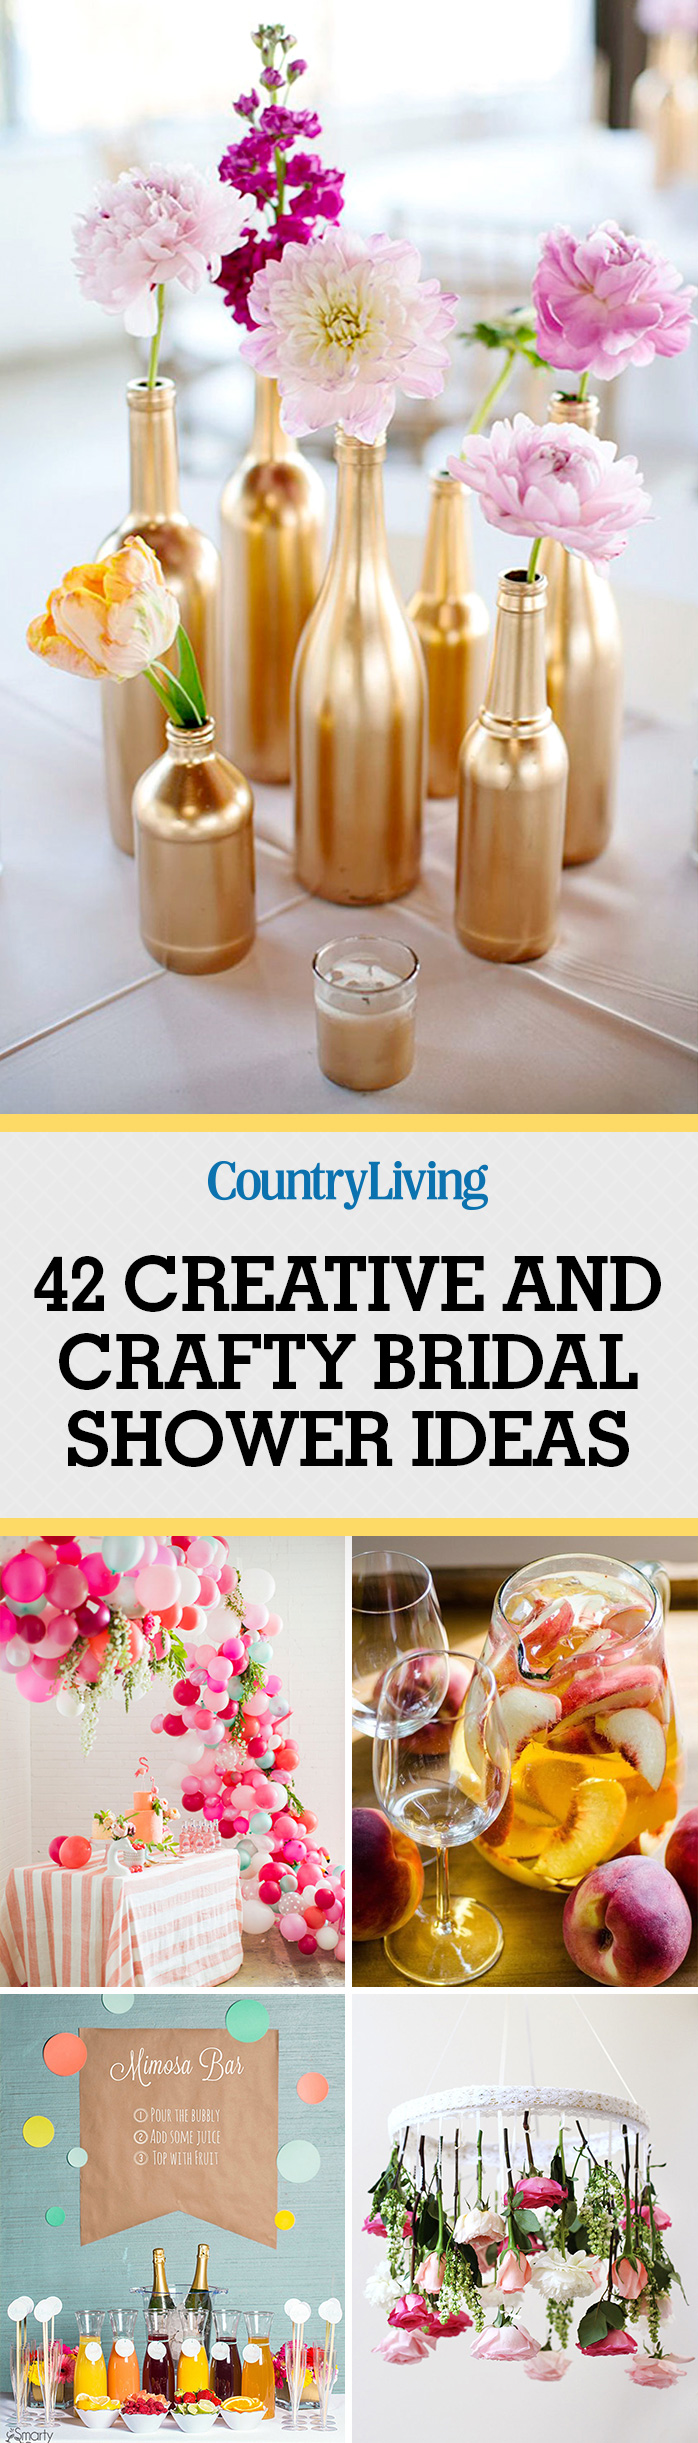 50 Best Bridal Shower Ideas